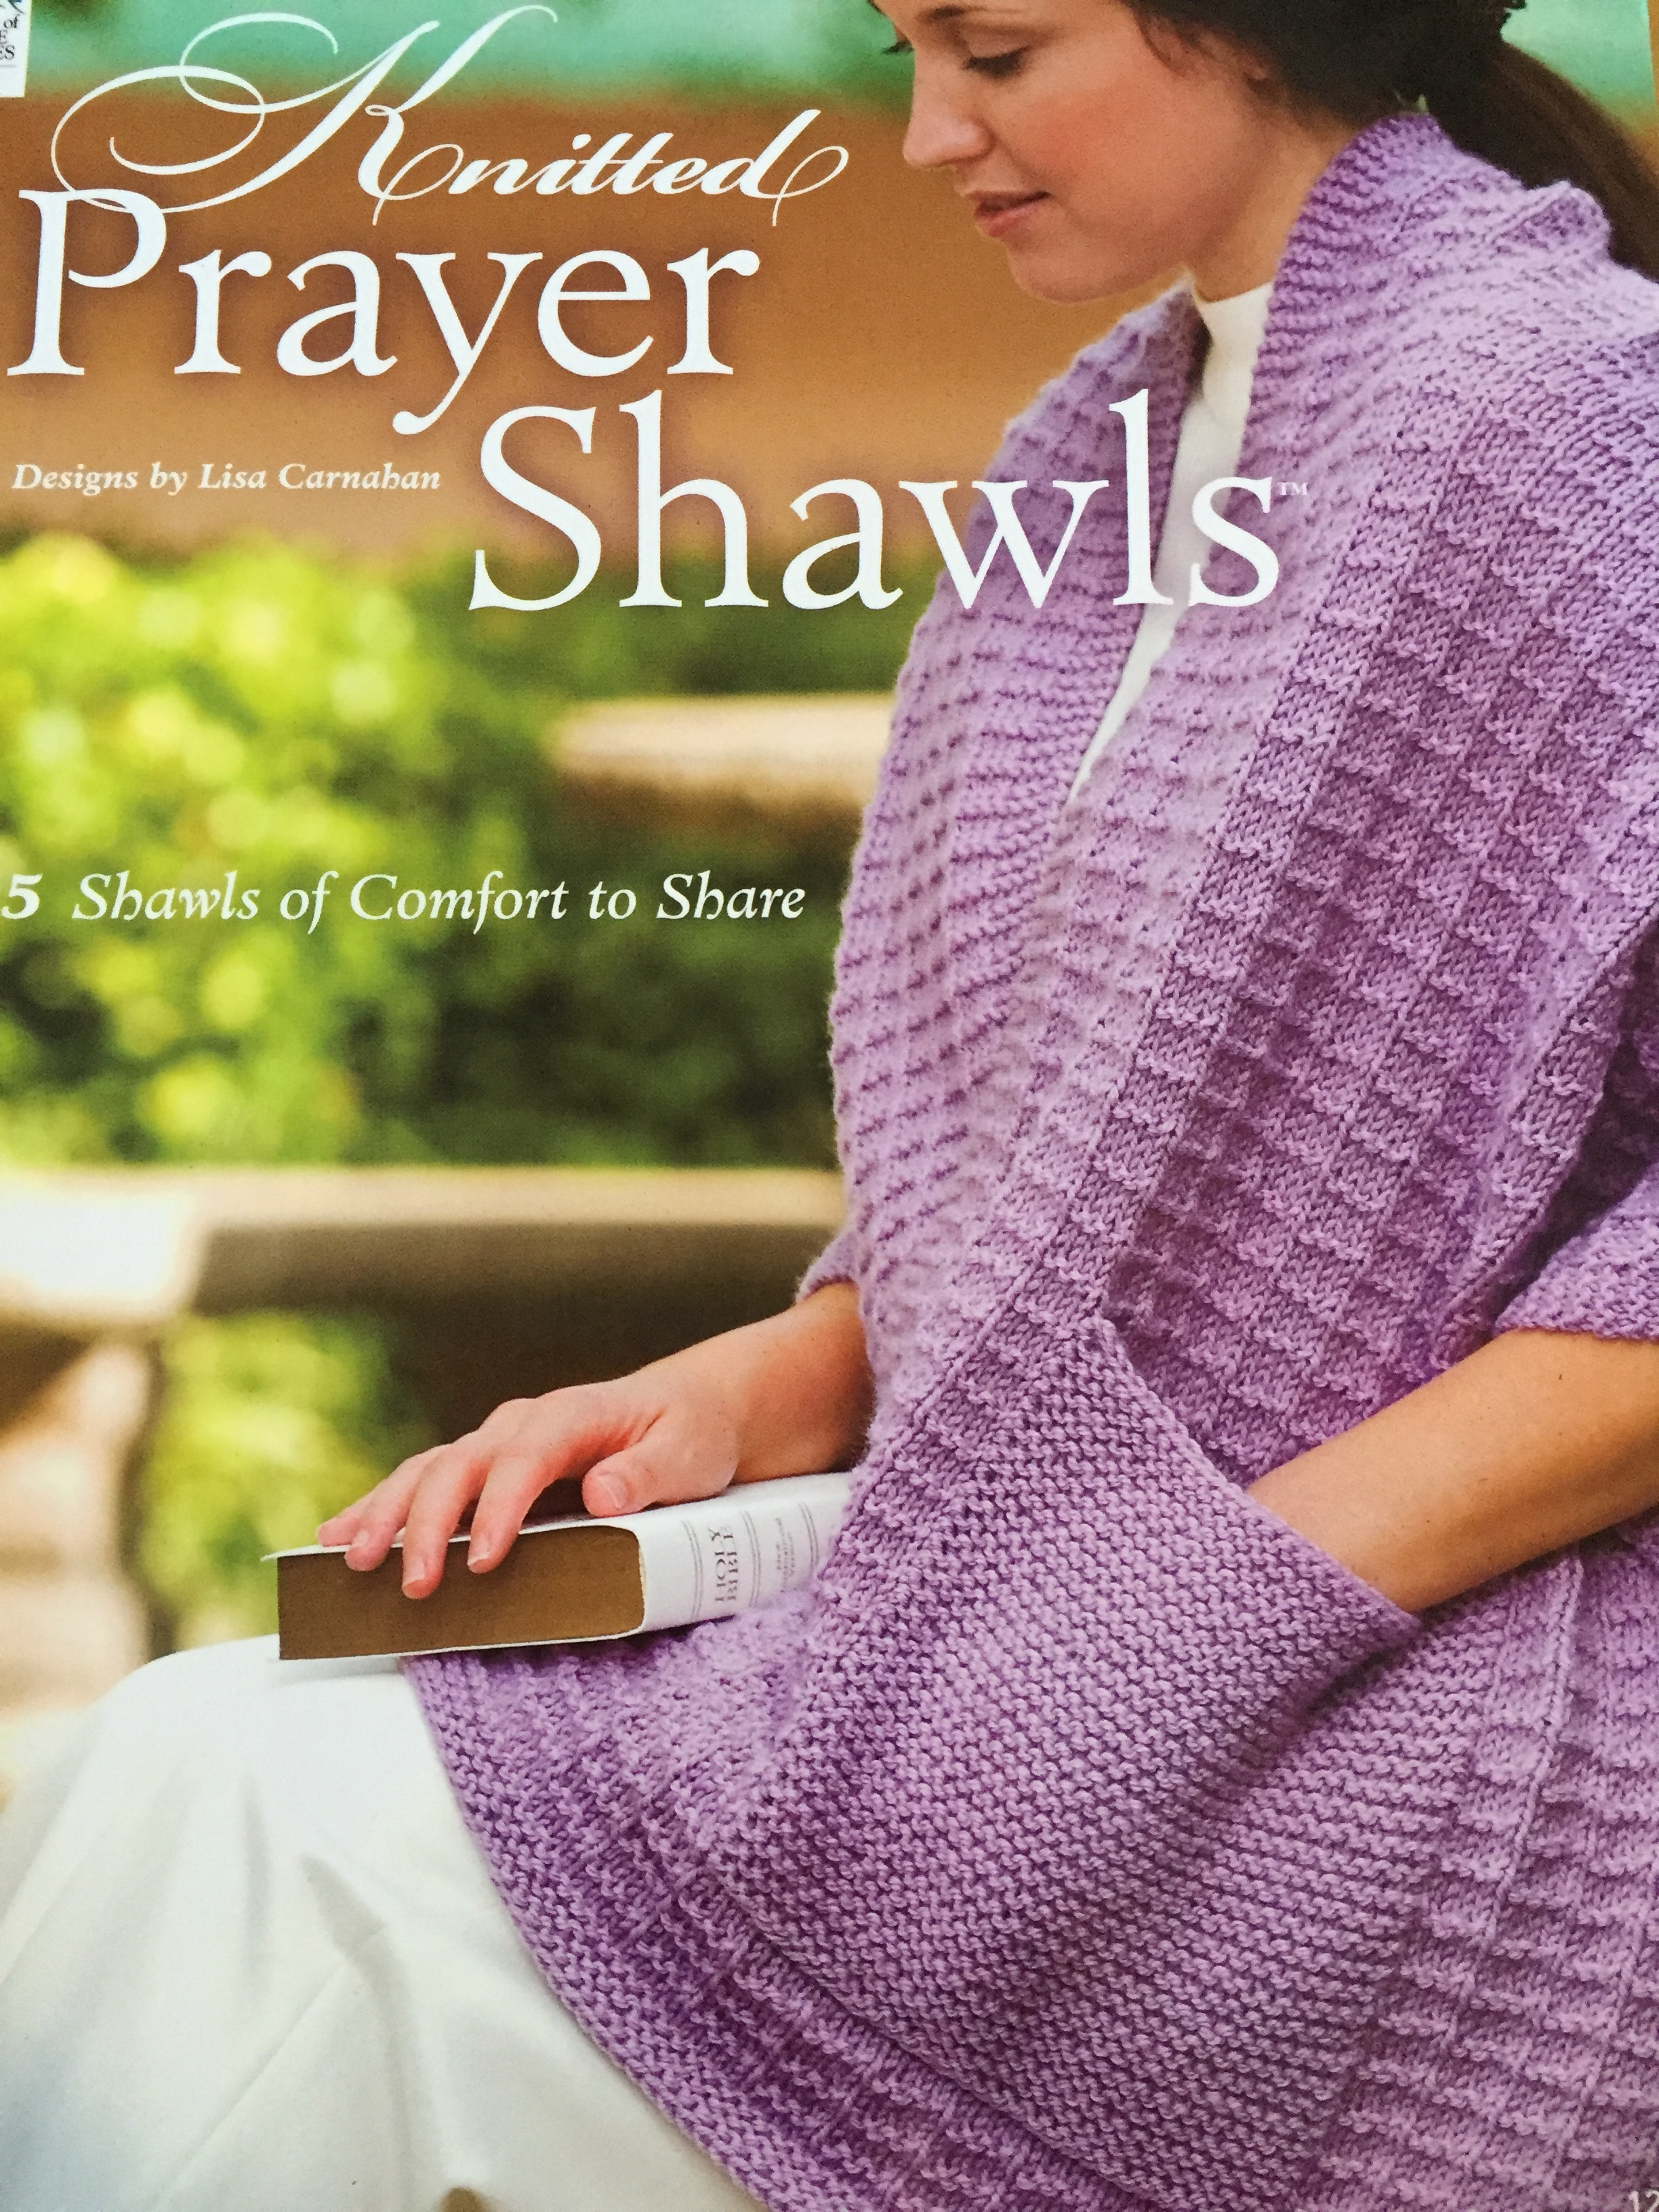 Knitted Prayer Shawls by Lisa Carnahan